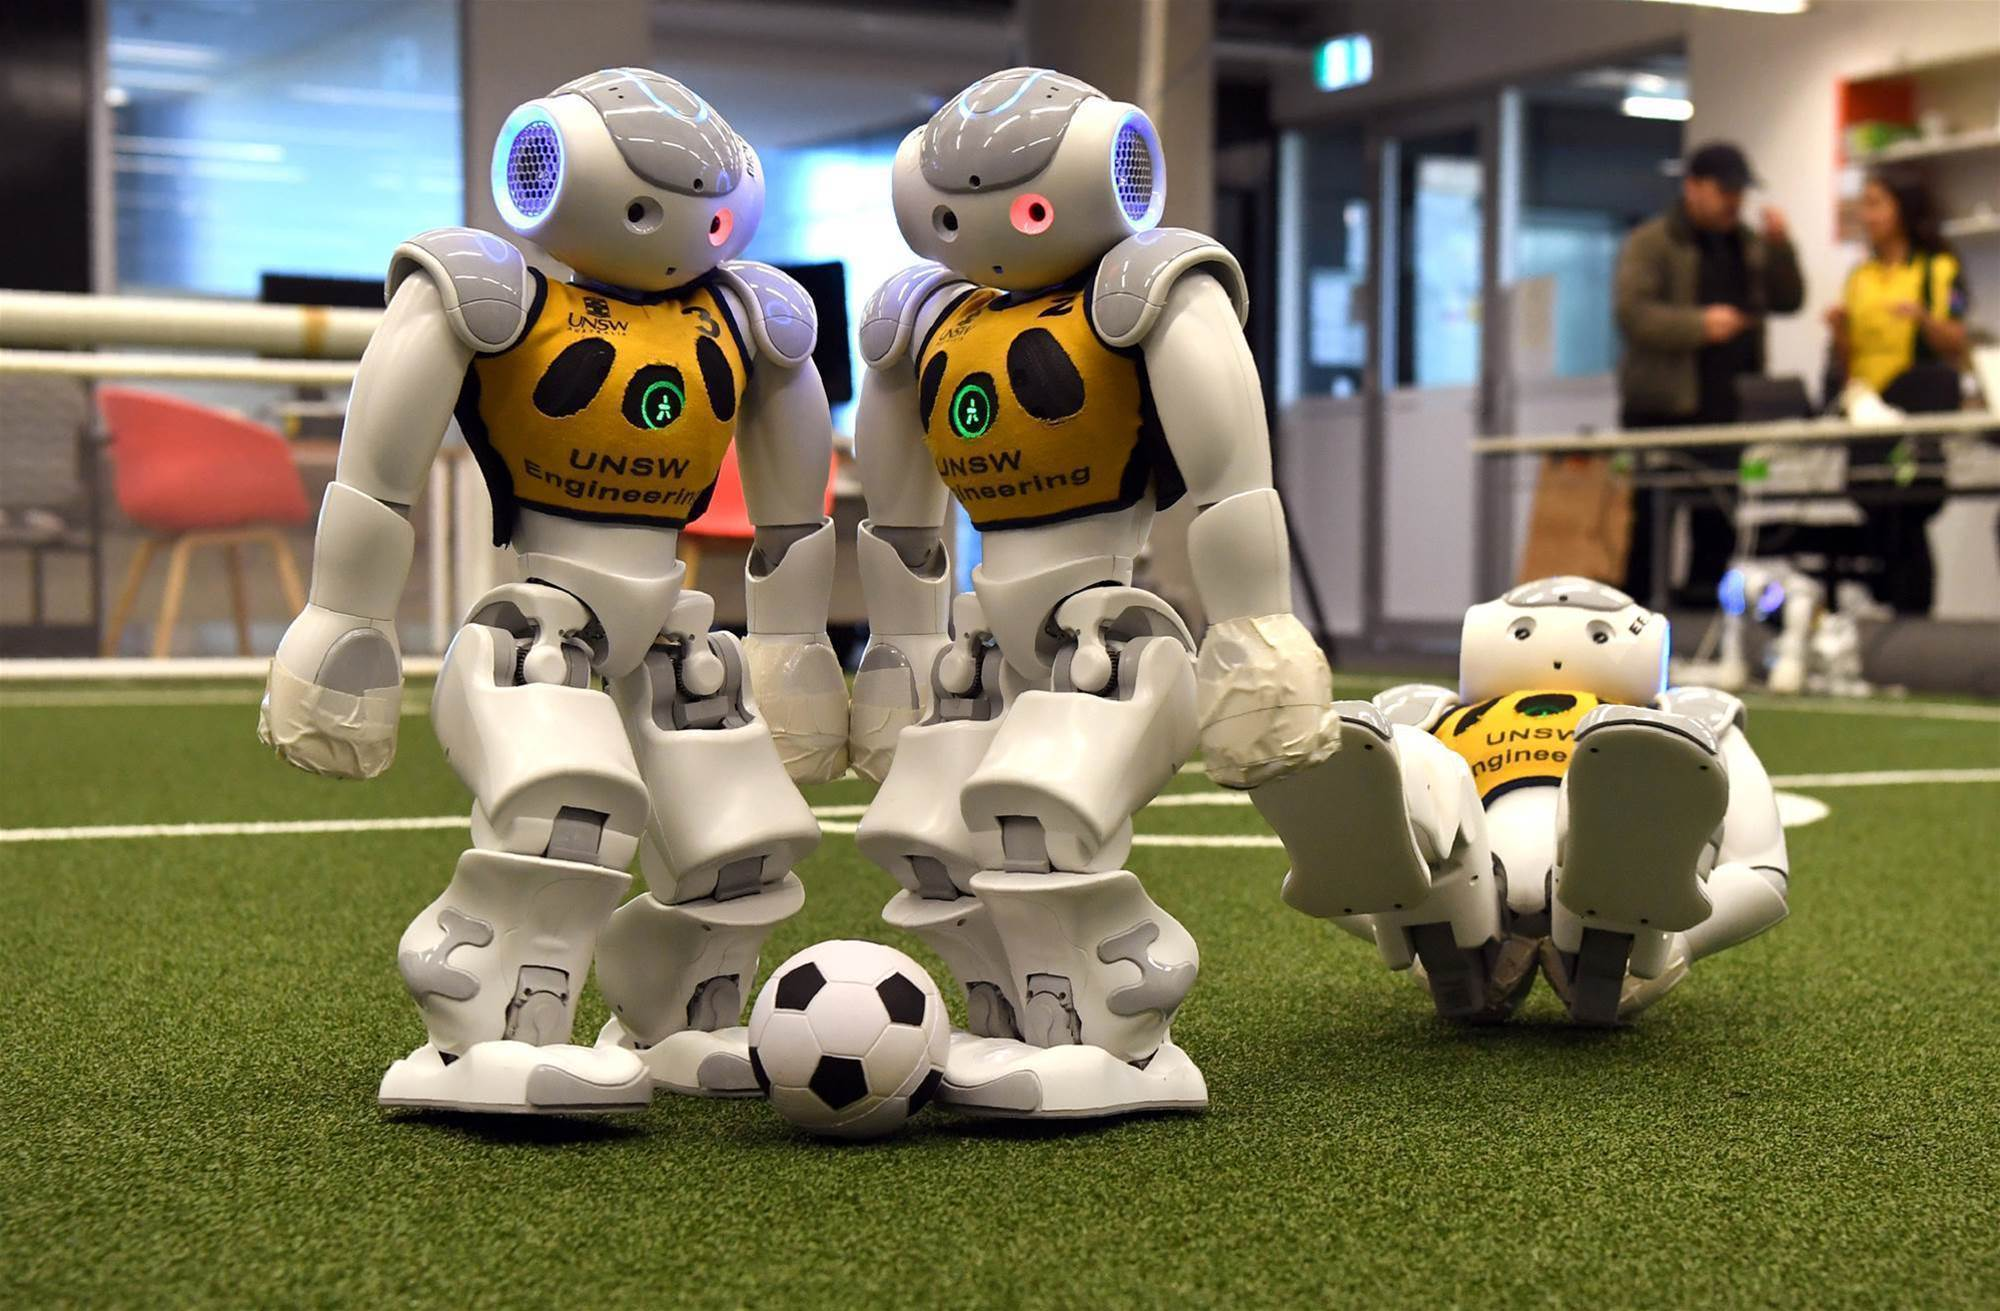 Pic special: Aussies head to RoboCup